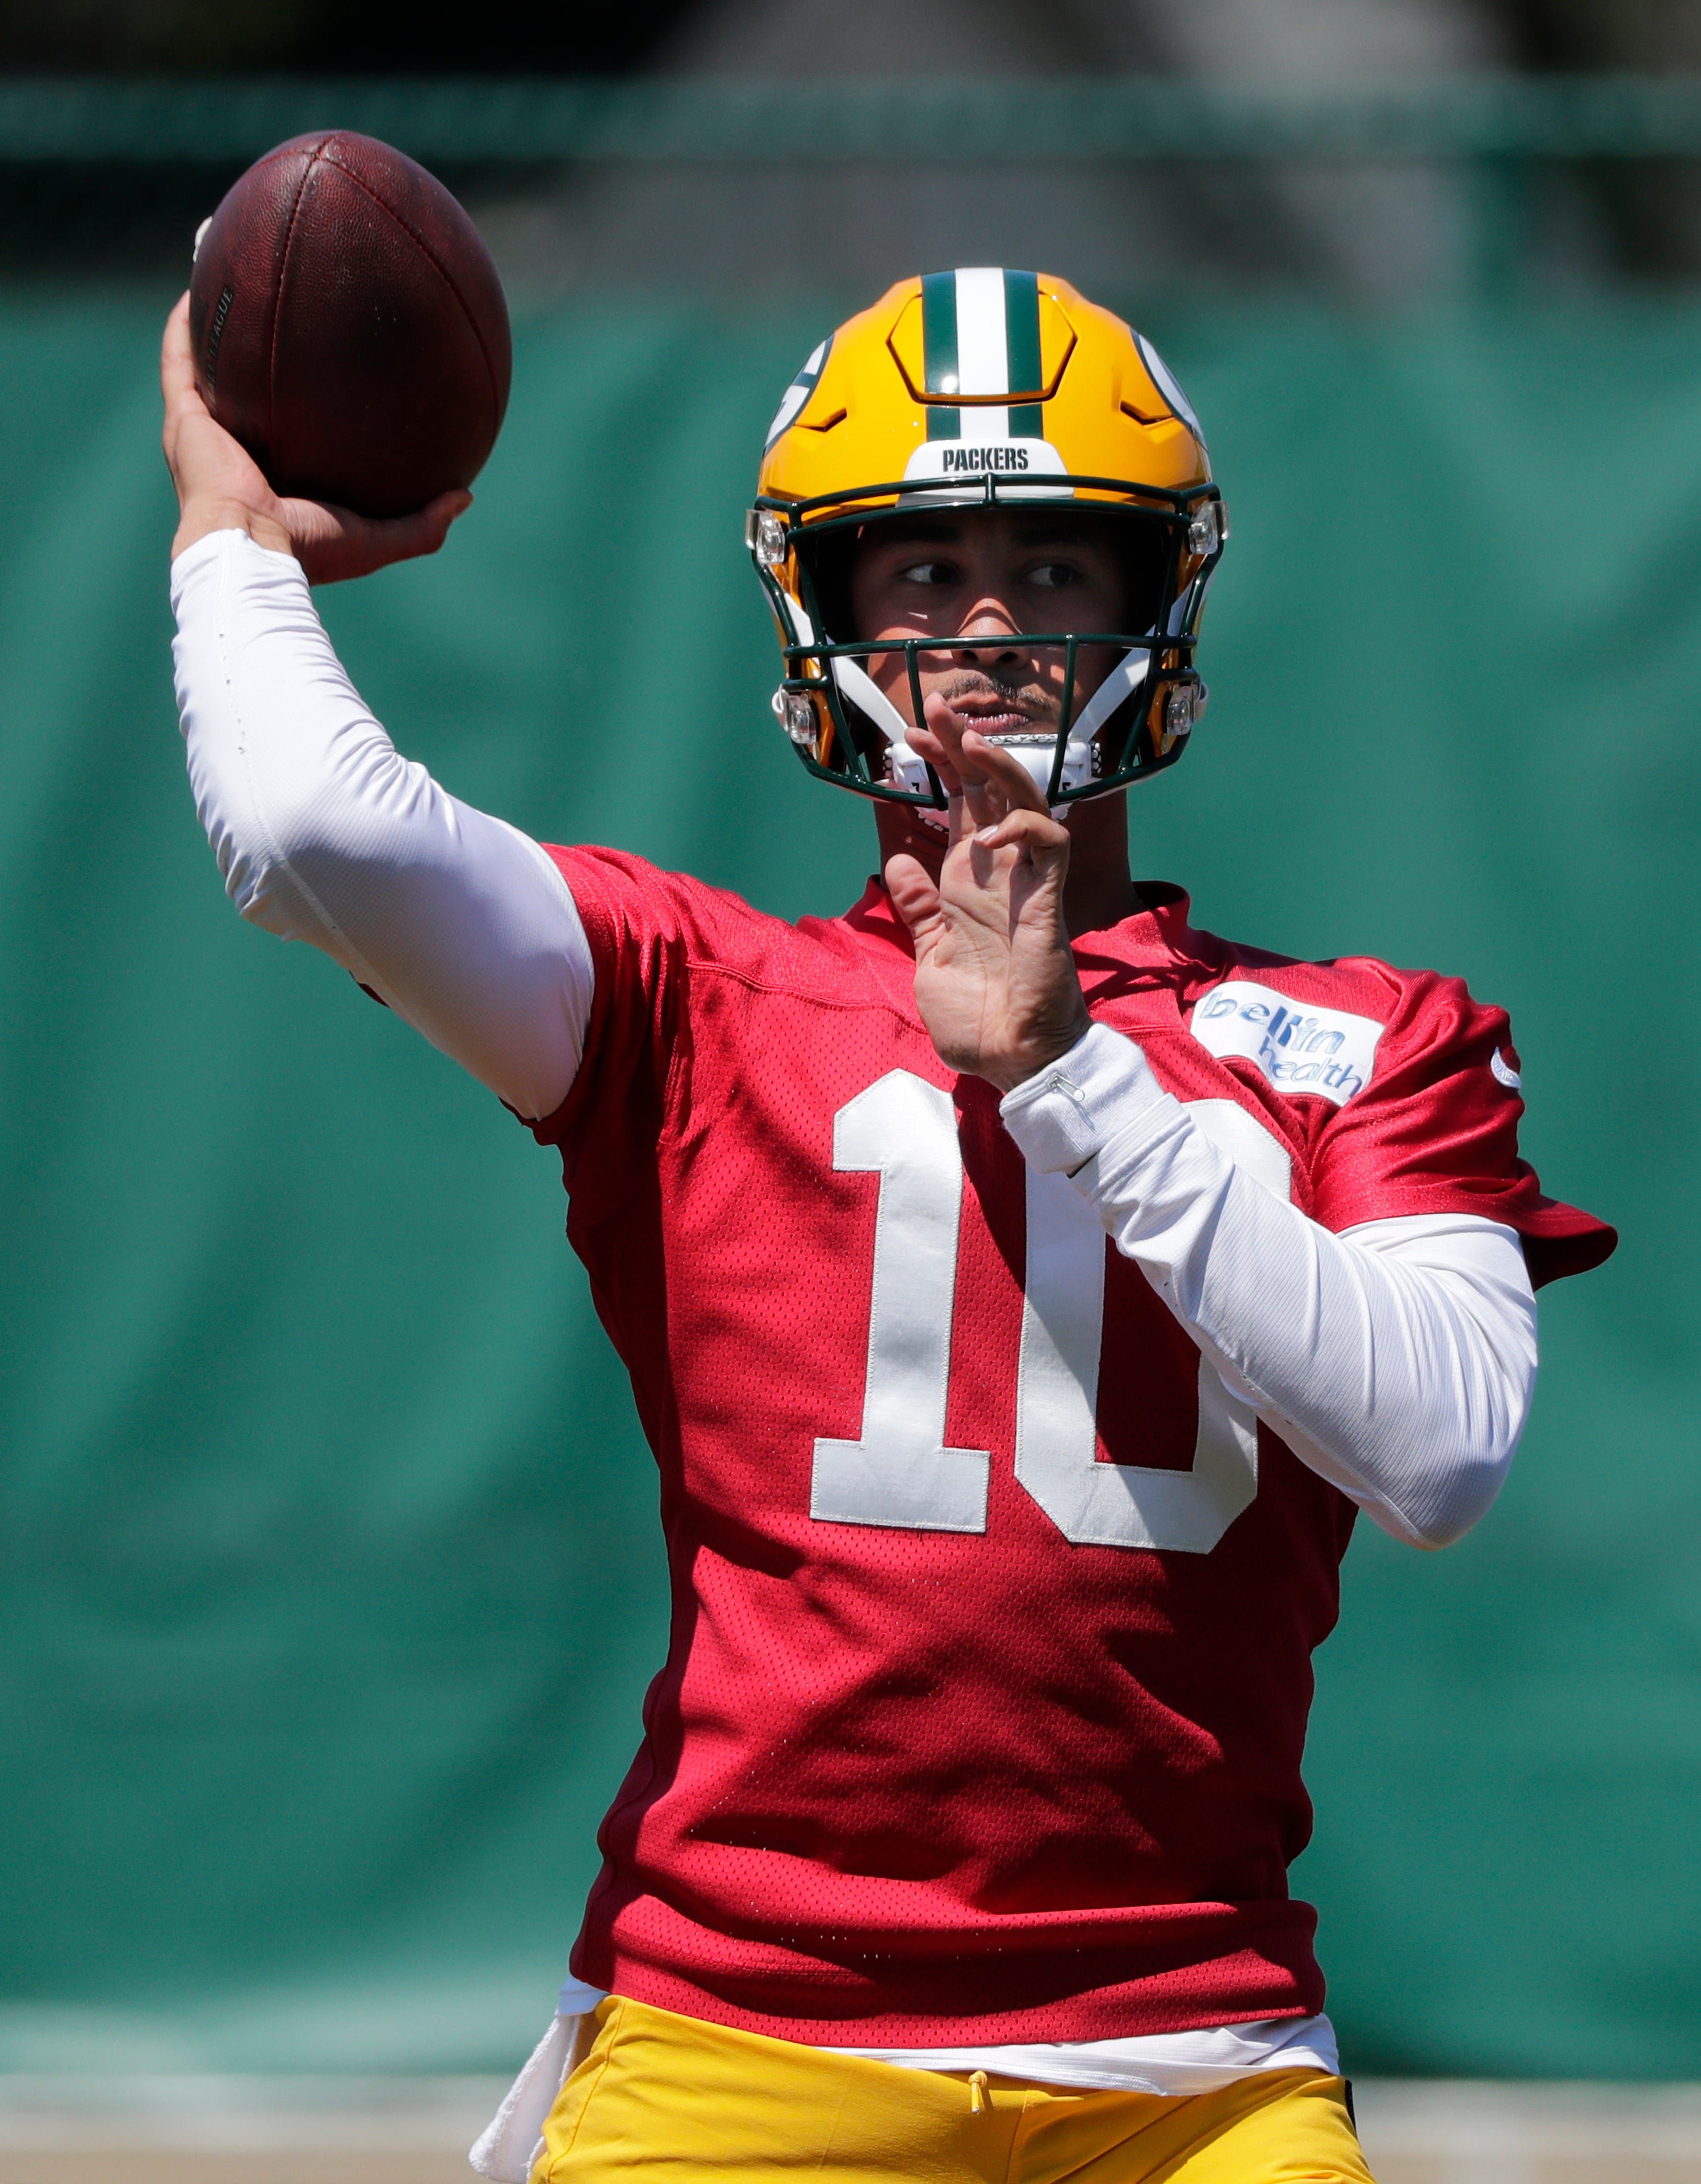 QB Jordan Love picking up Packers' offense by doing exactly what Aaron Rodgers did